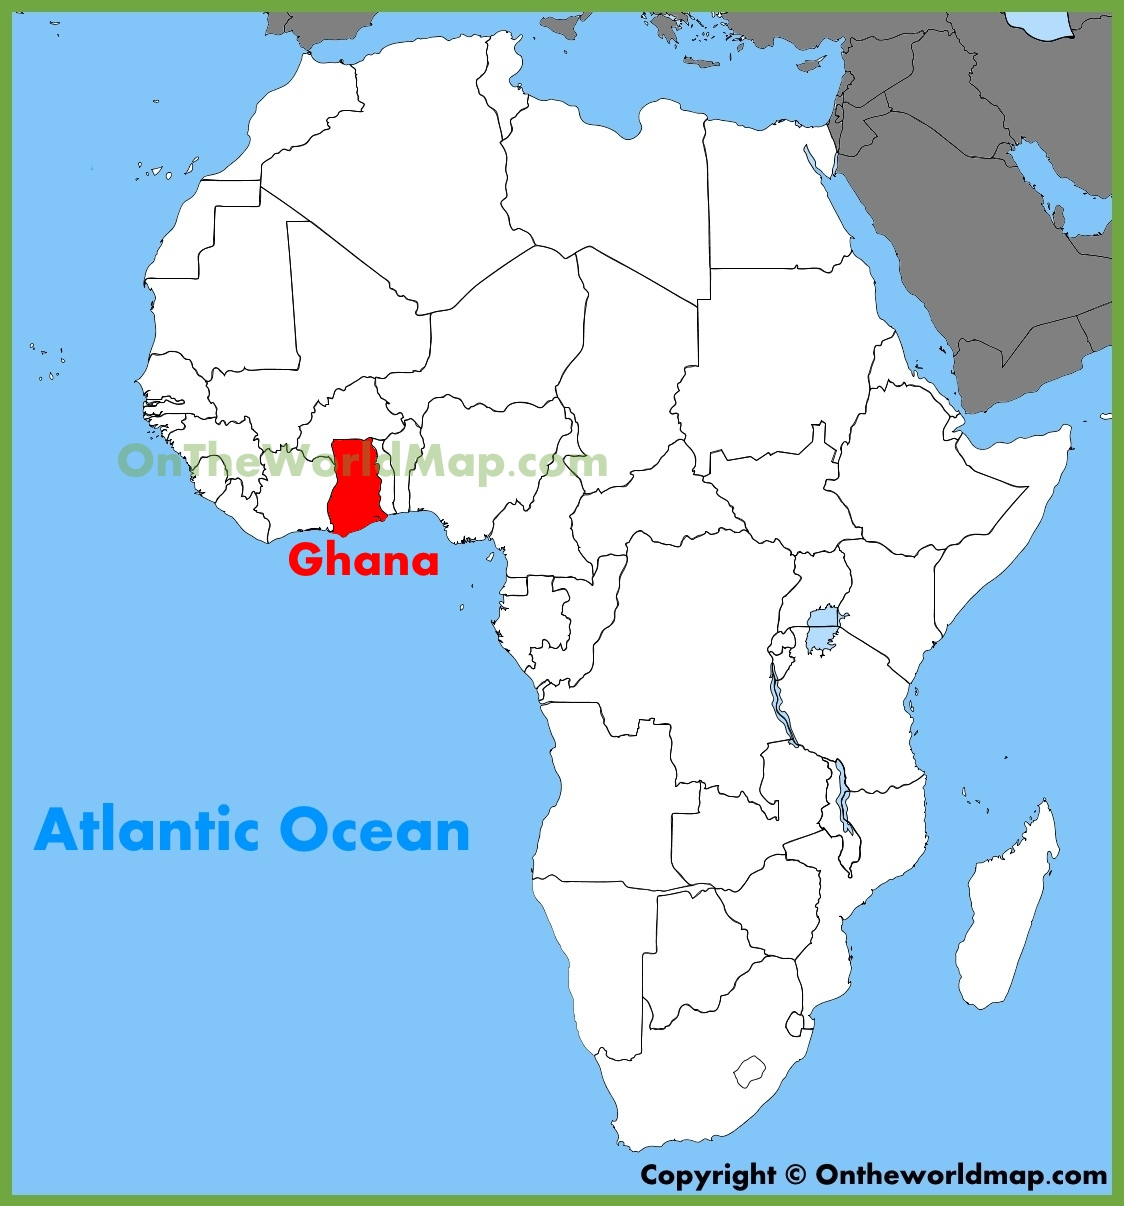 Where Is Ghana On The Map Ghana location on the Africa map